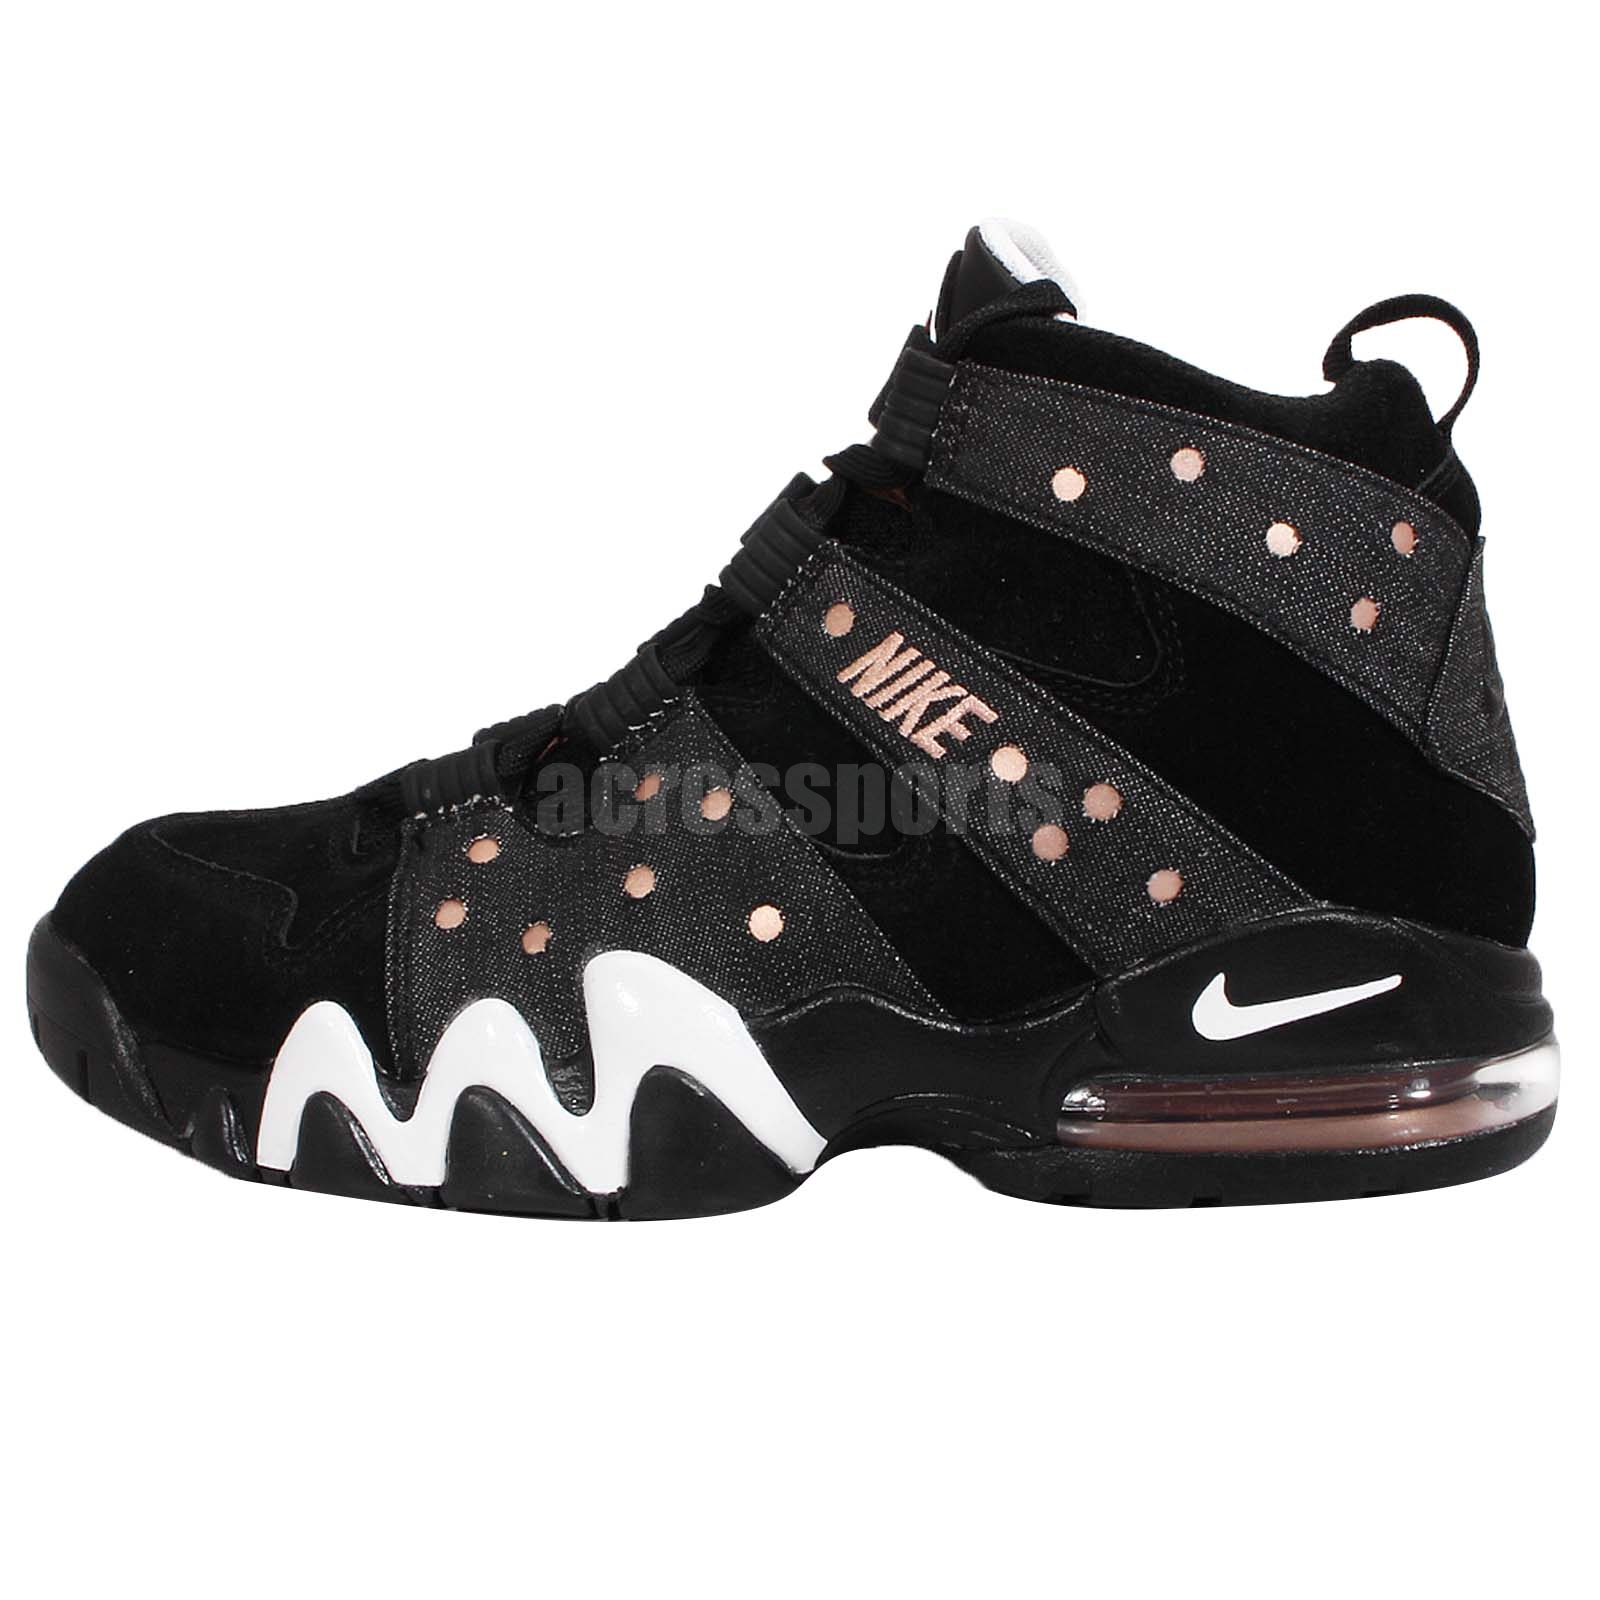 nike air max 2 cb 94 charles barkley black bronze mens